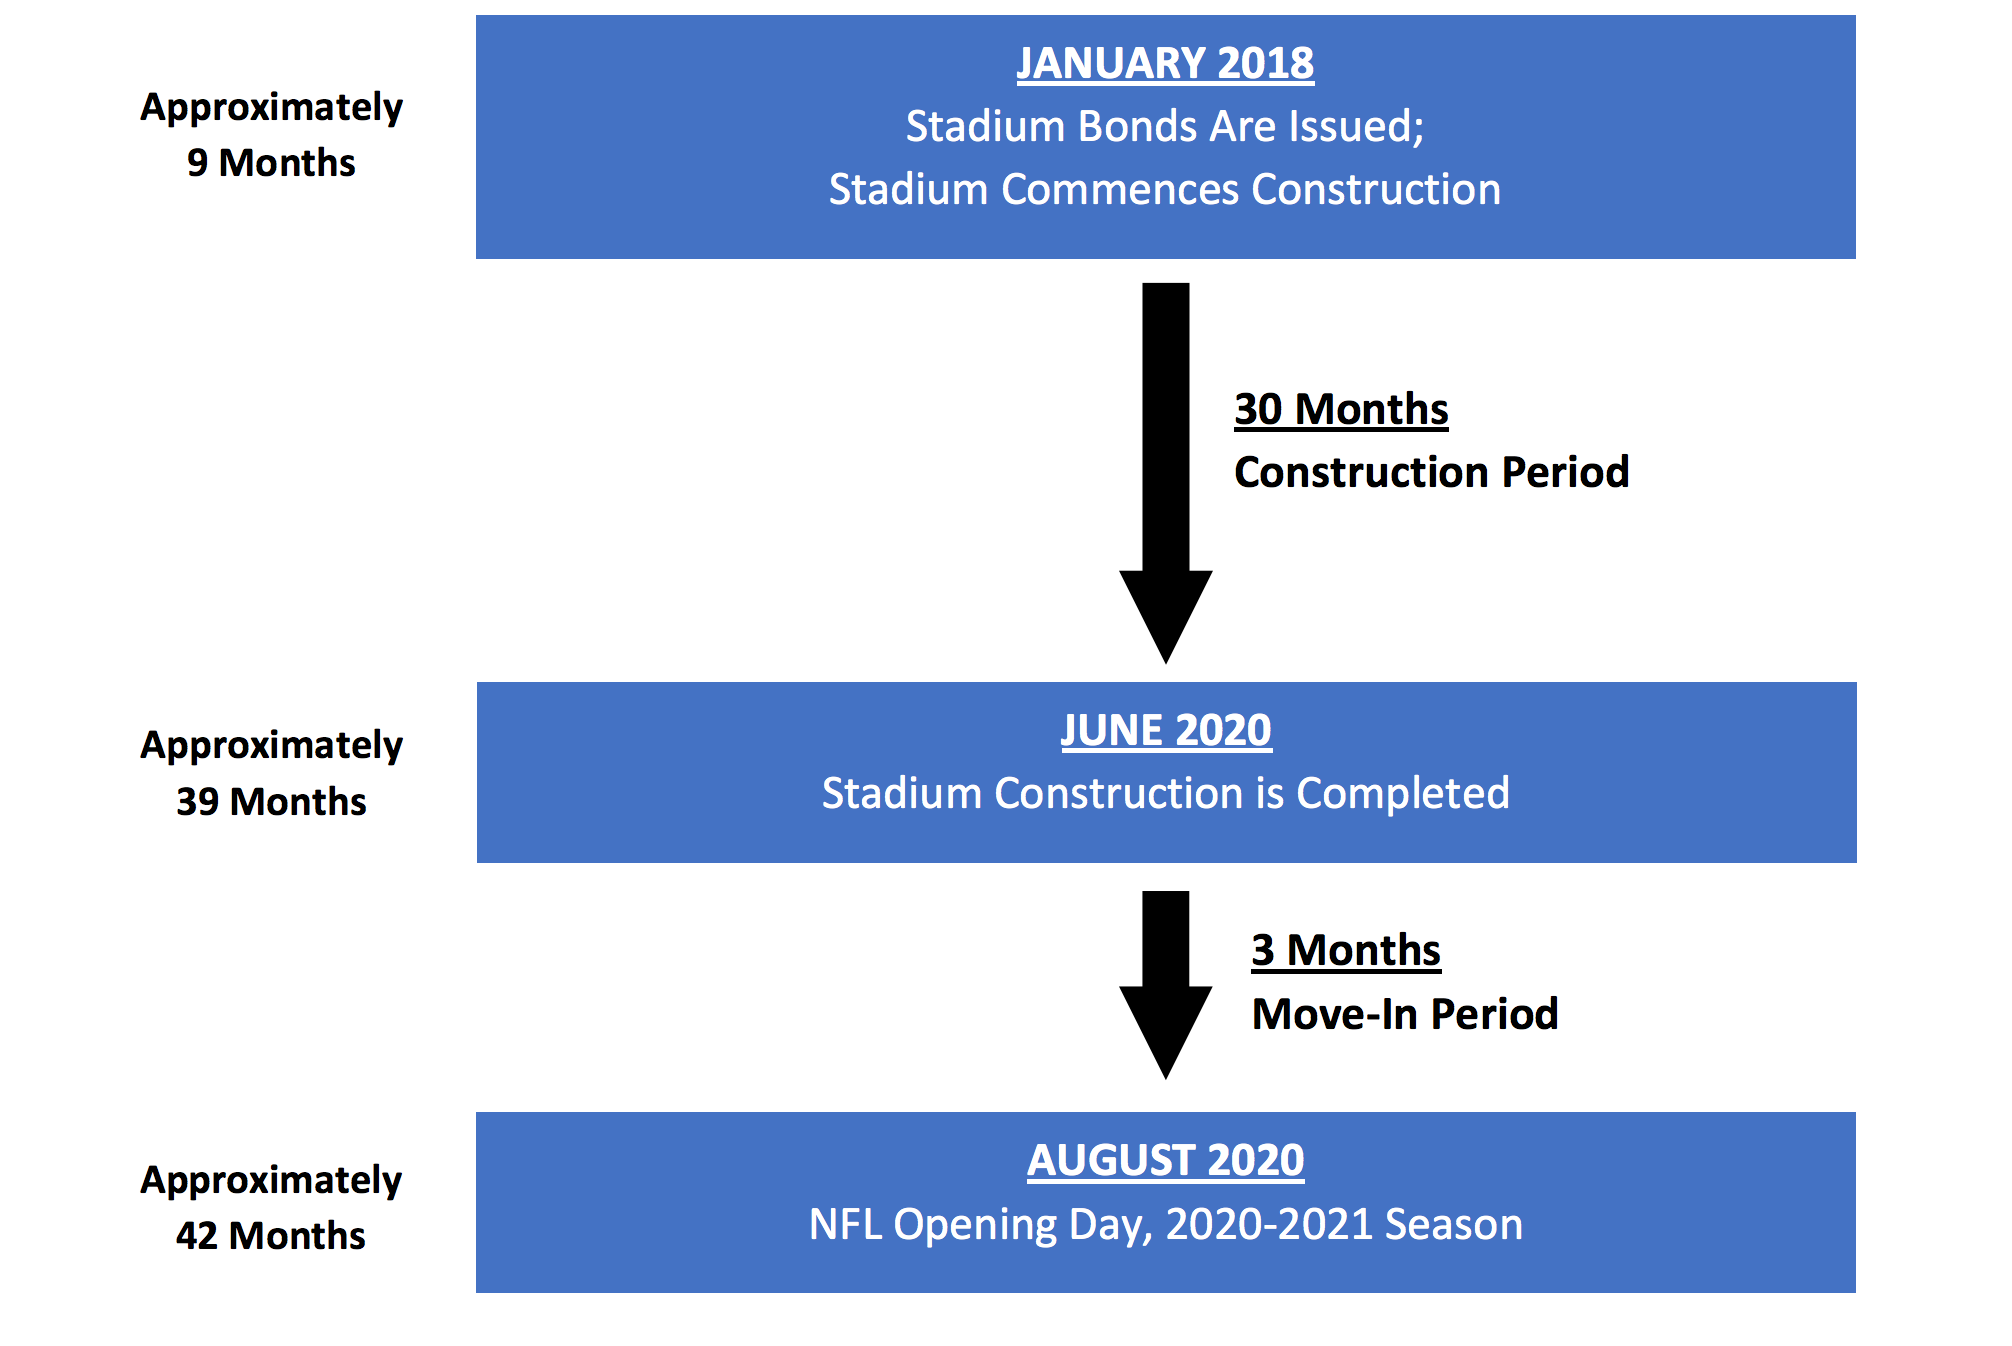 Raiders Las Vegas stadium construction timeline is very tight – Construction Timeline